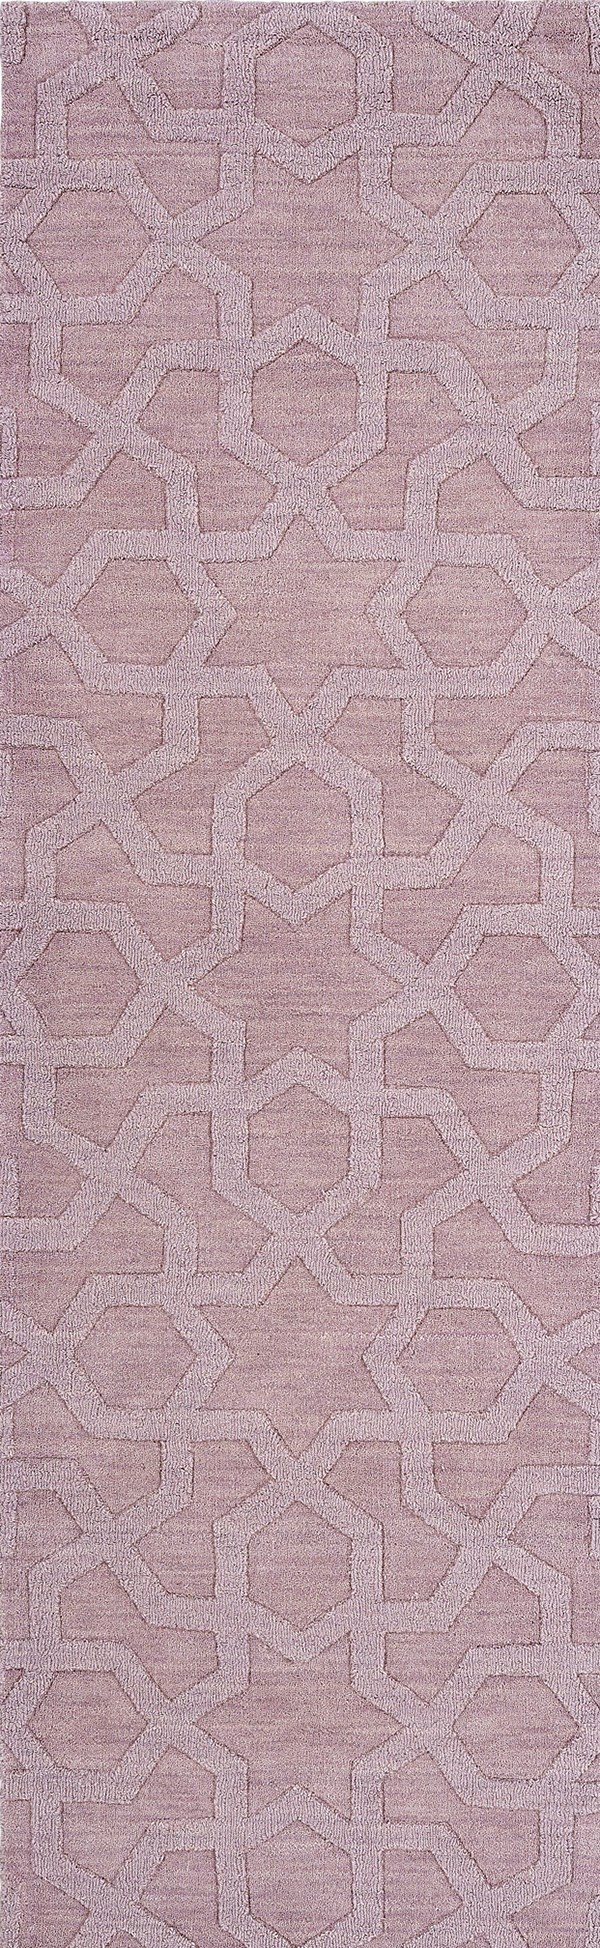 Lilac (90) Textured Solid Area Rug